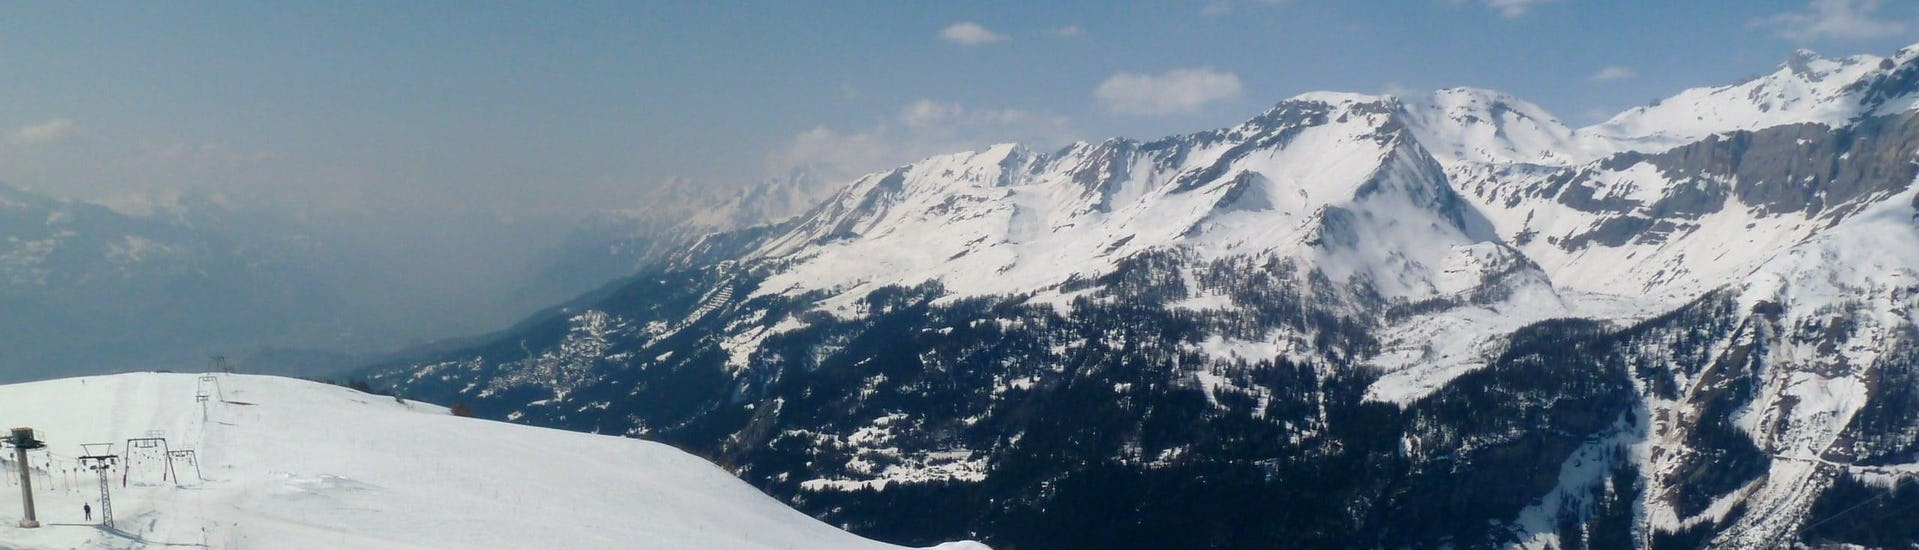 View over the sunny mountain landscape while learning to ski with the ski schools in Crans-Montana.